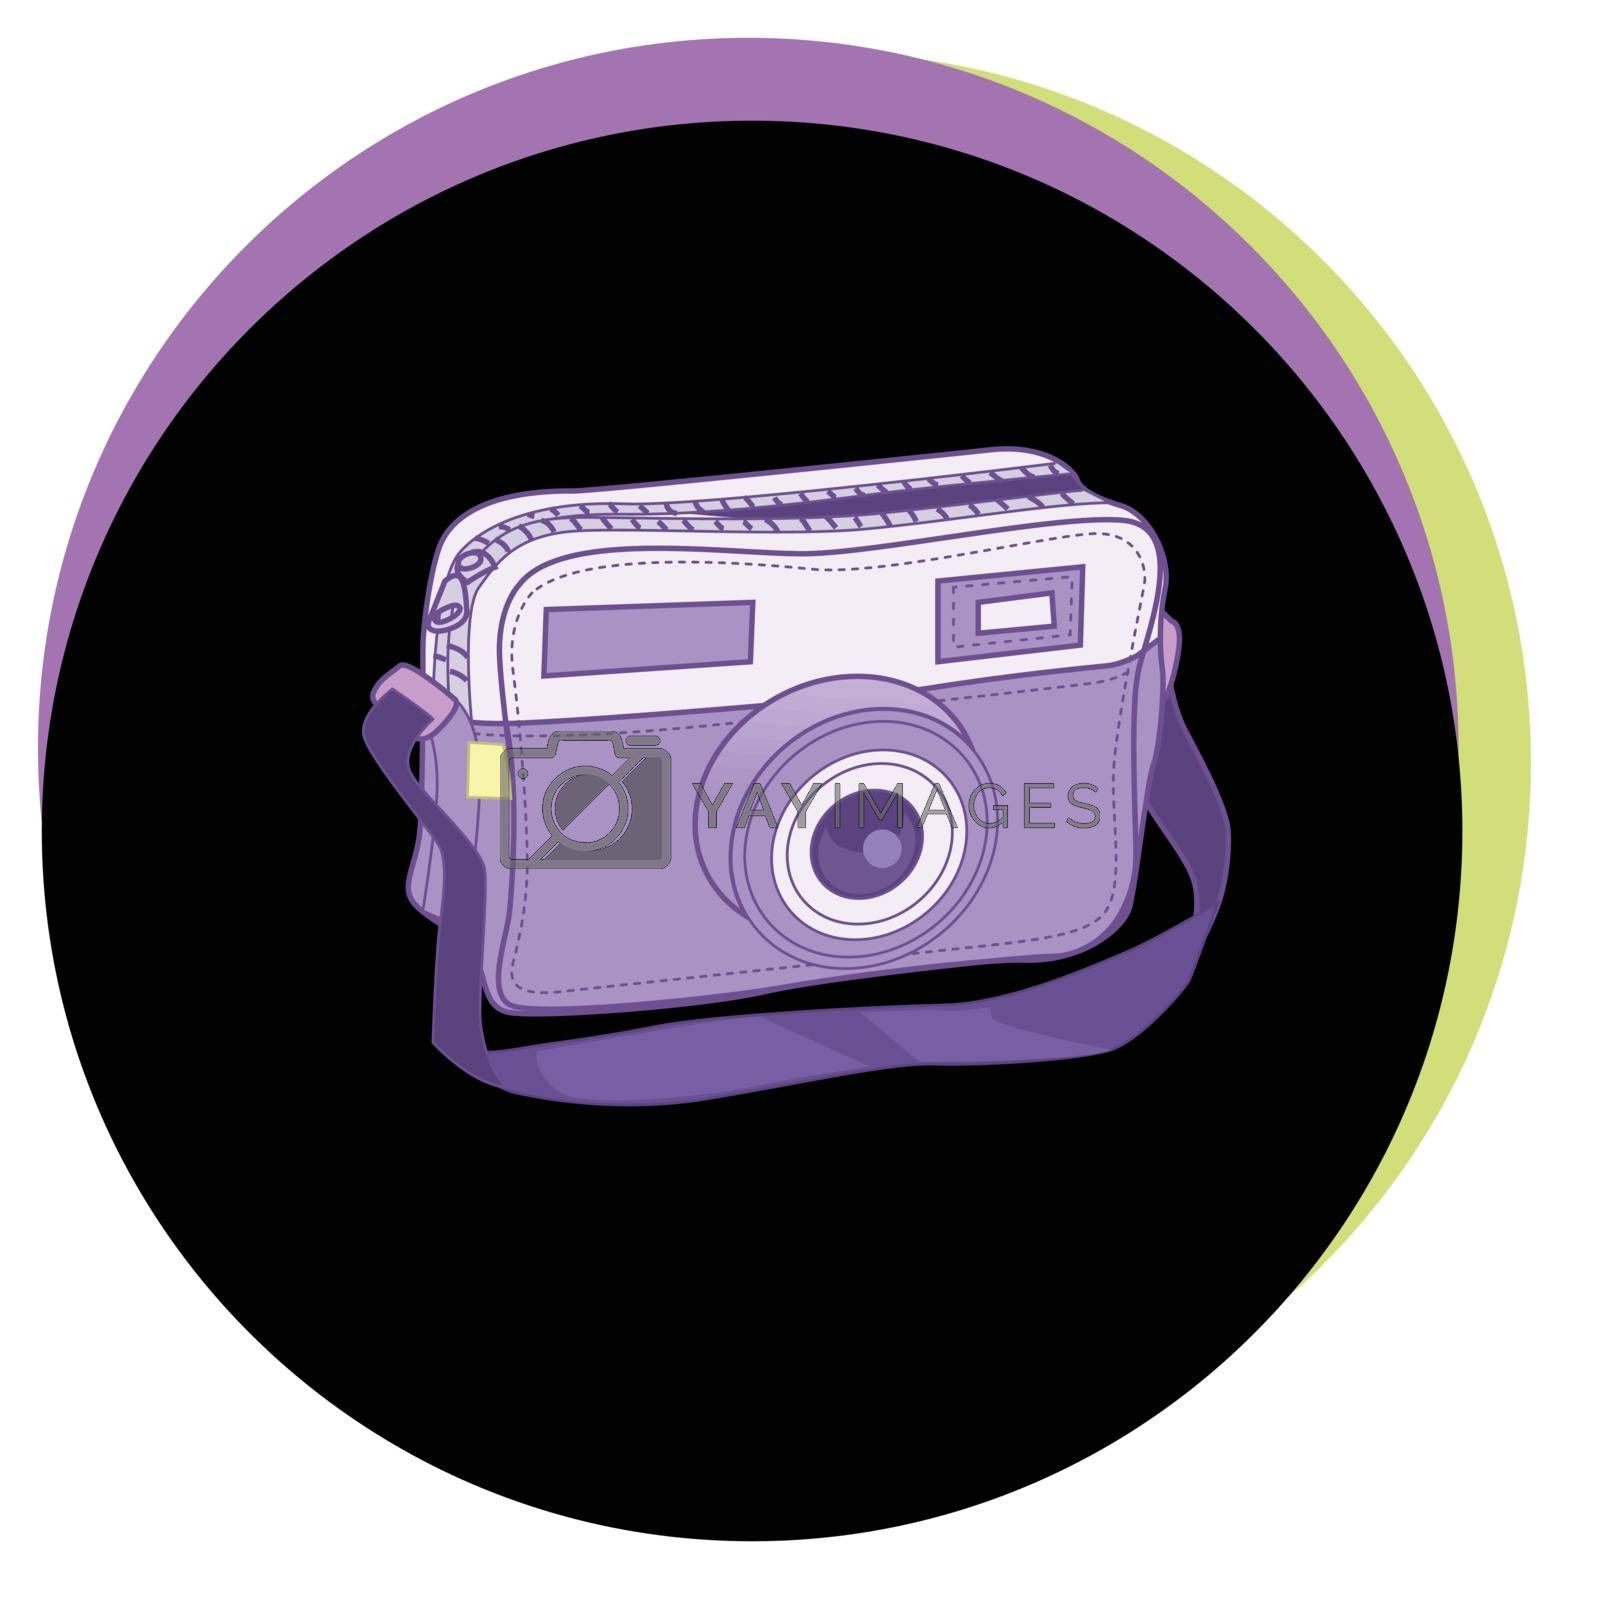 Fashion Vector Illustration. Stylish ladies bag in the form of a camera